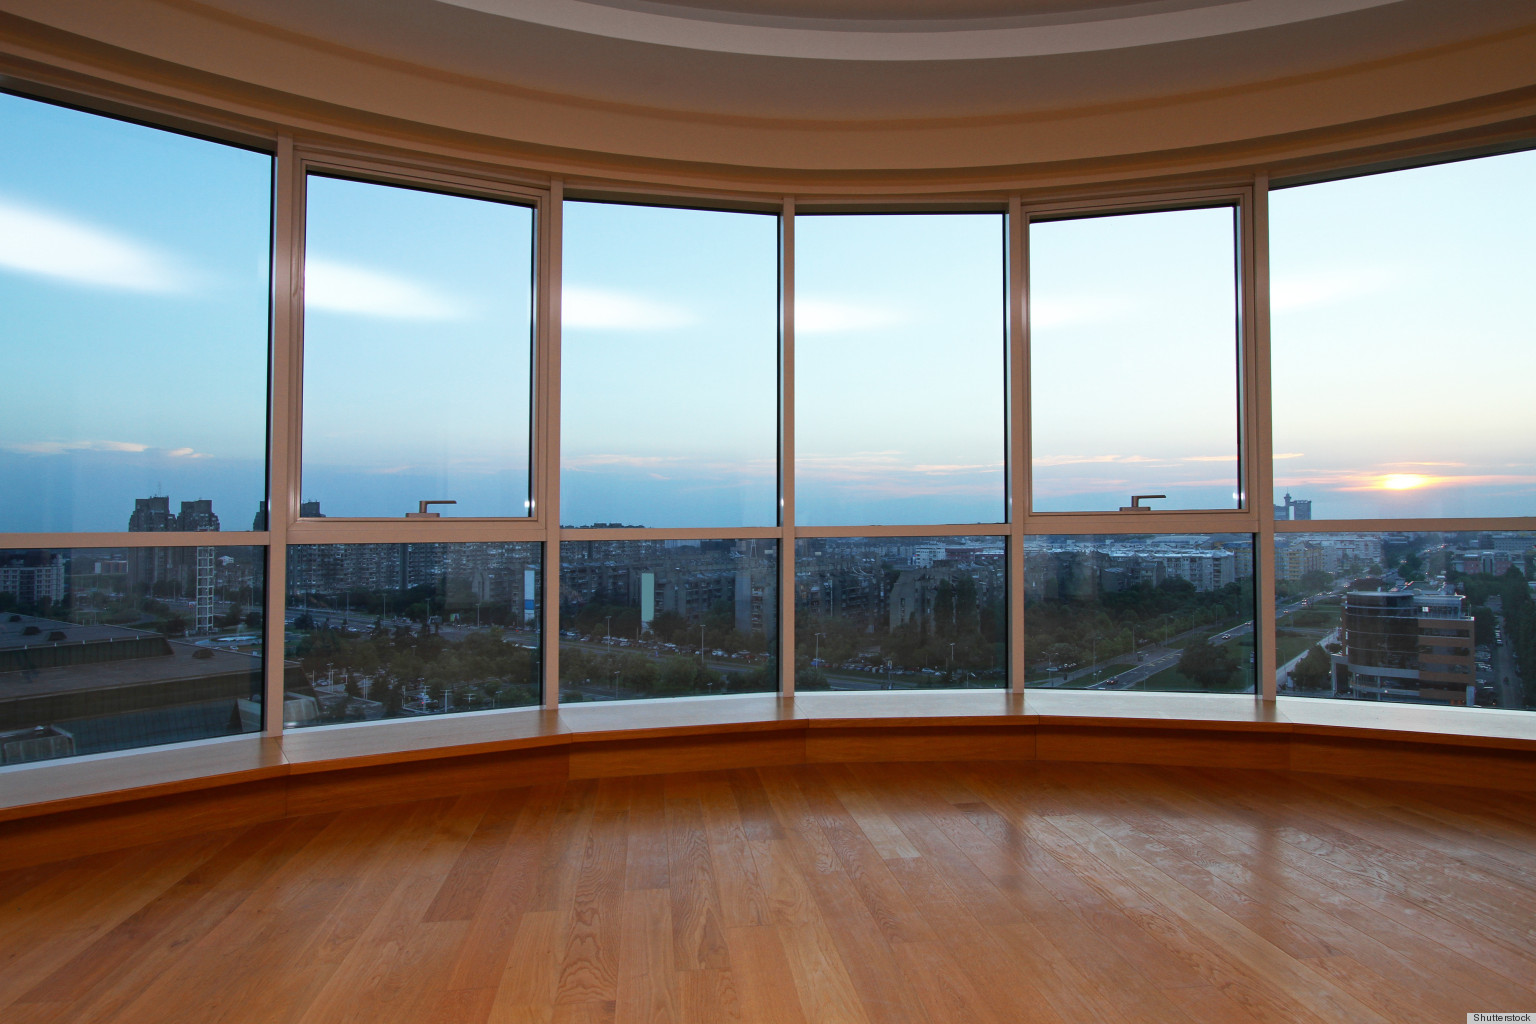 Panoramic glazing: nuances that are important to know